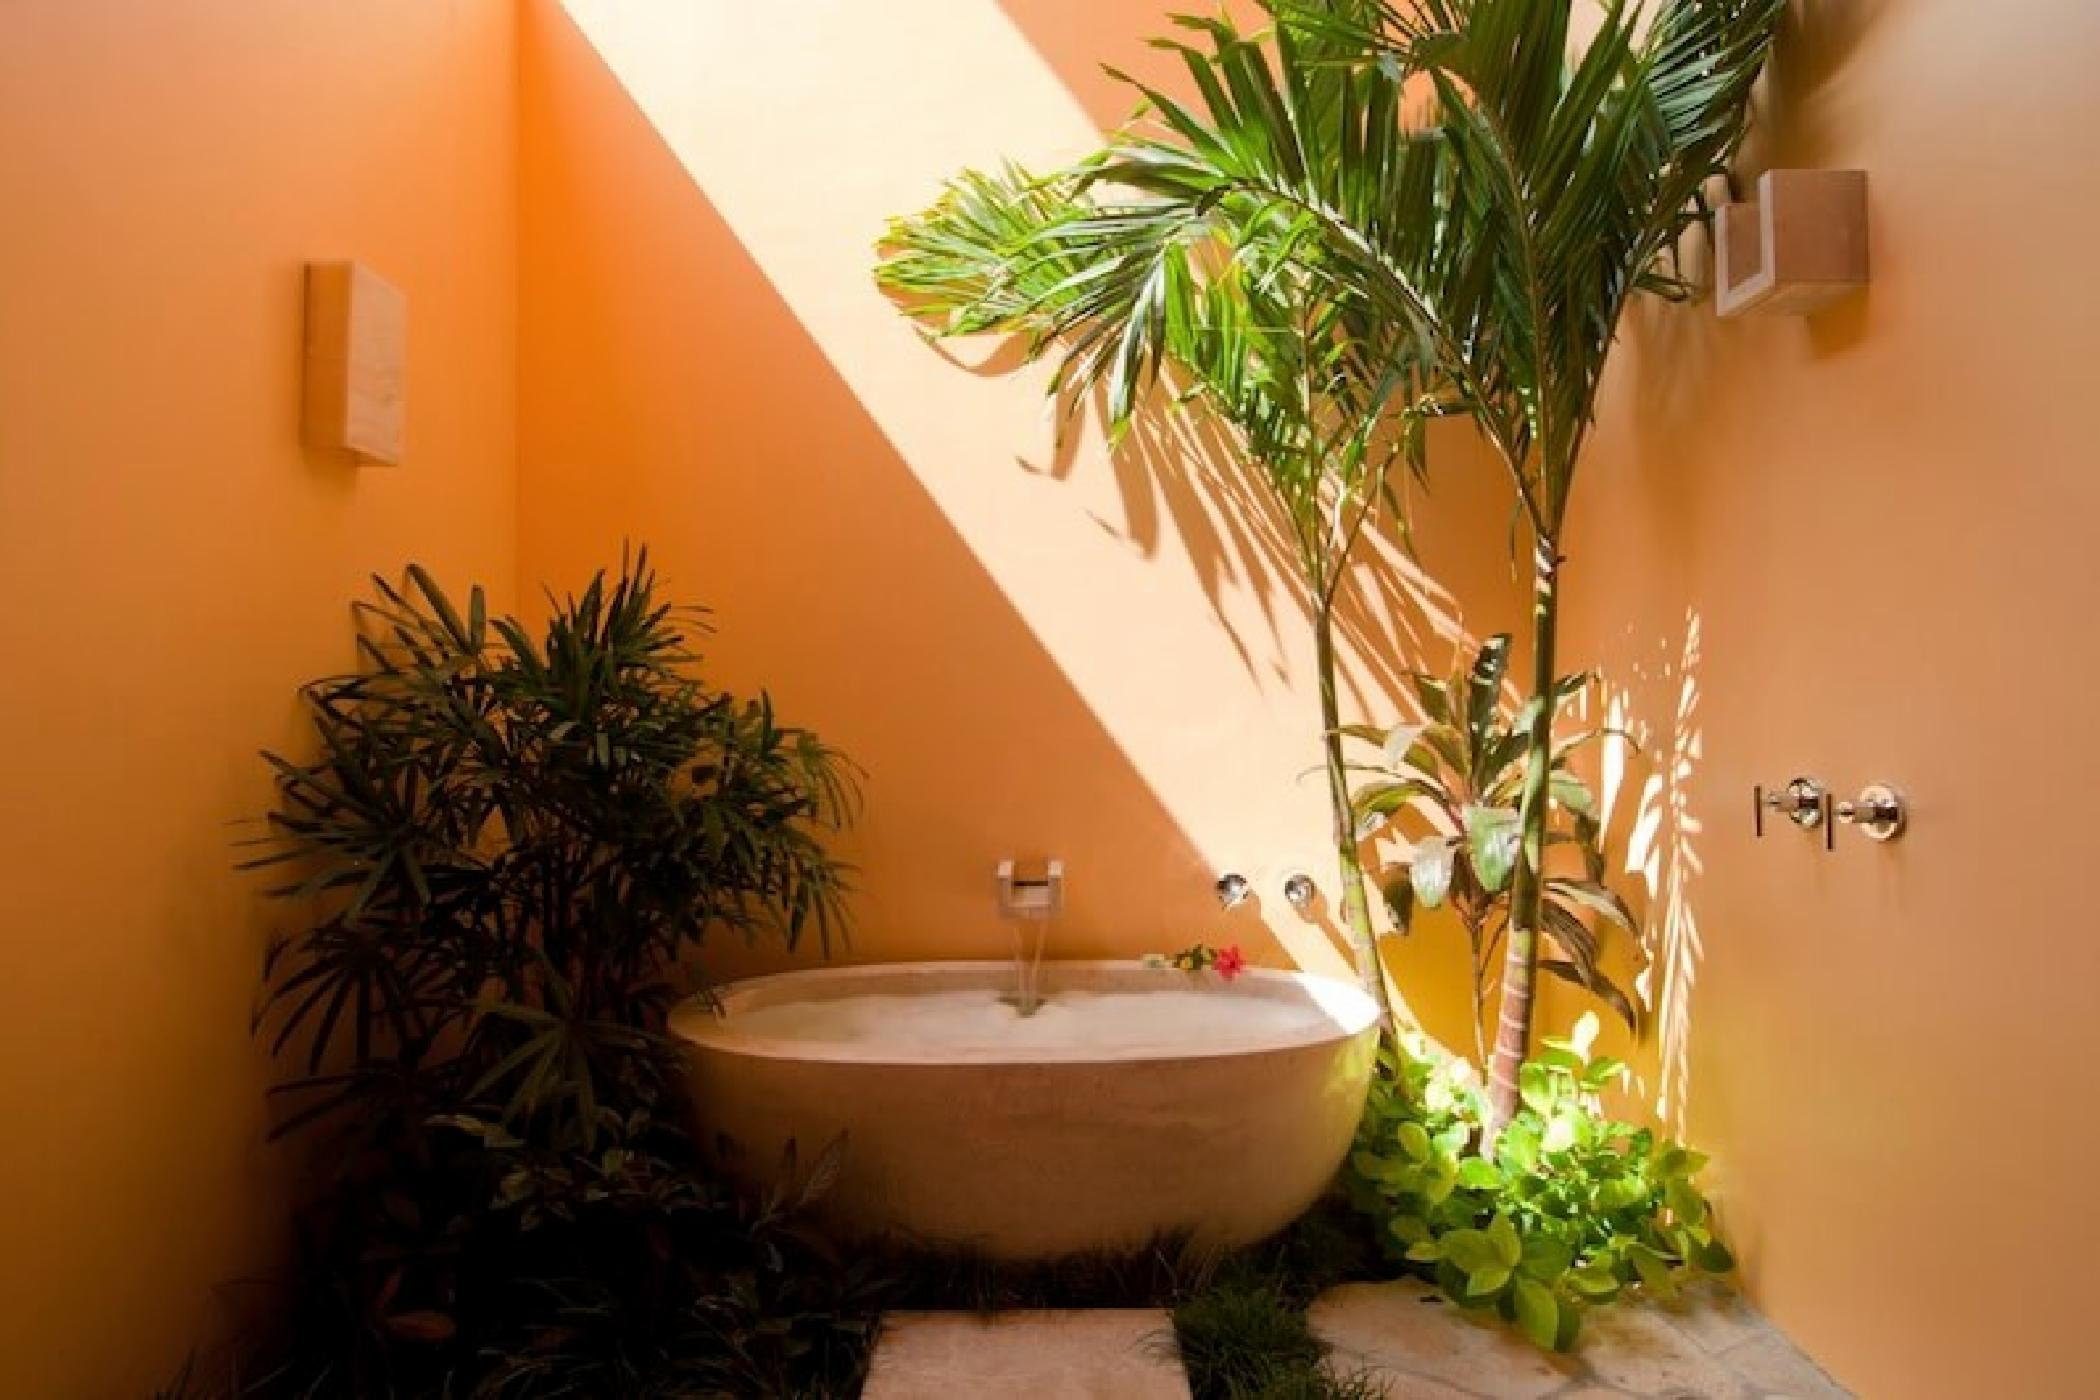 The turquoise master has an outdoor bathroom with a soaking tub.